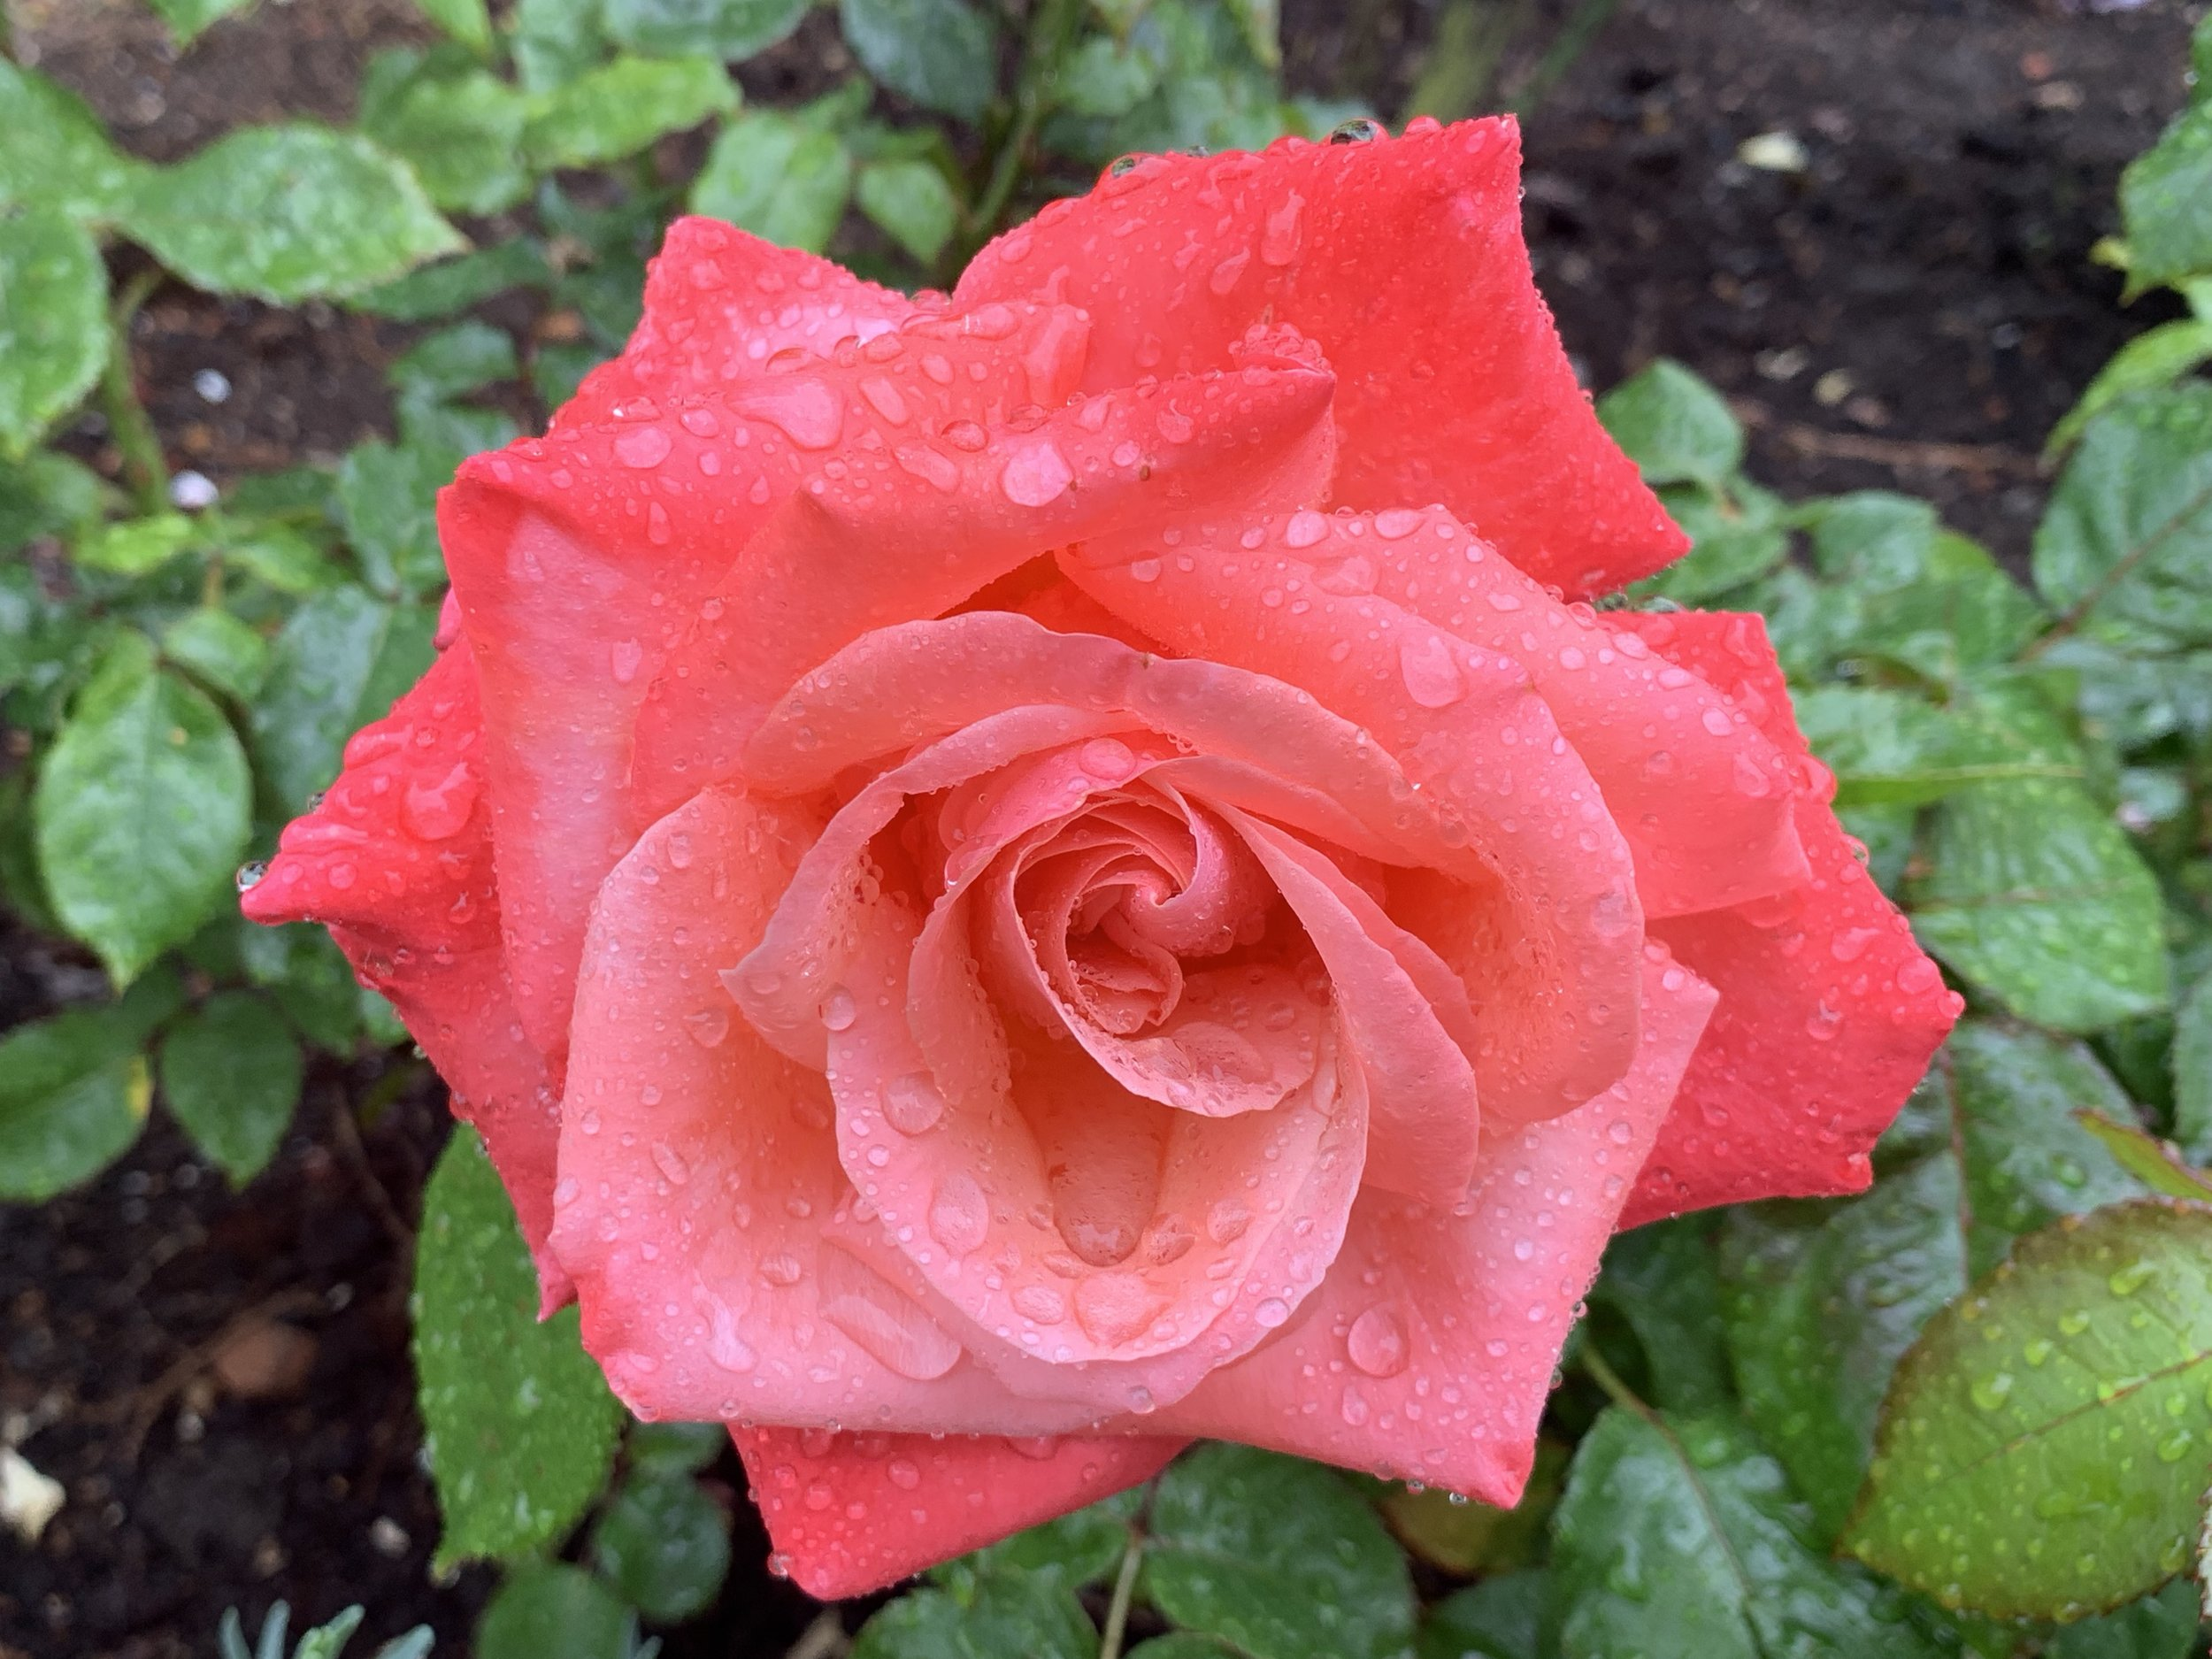 My mother loved roses. Photo by anne richardson.